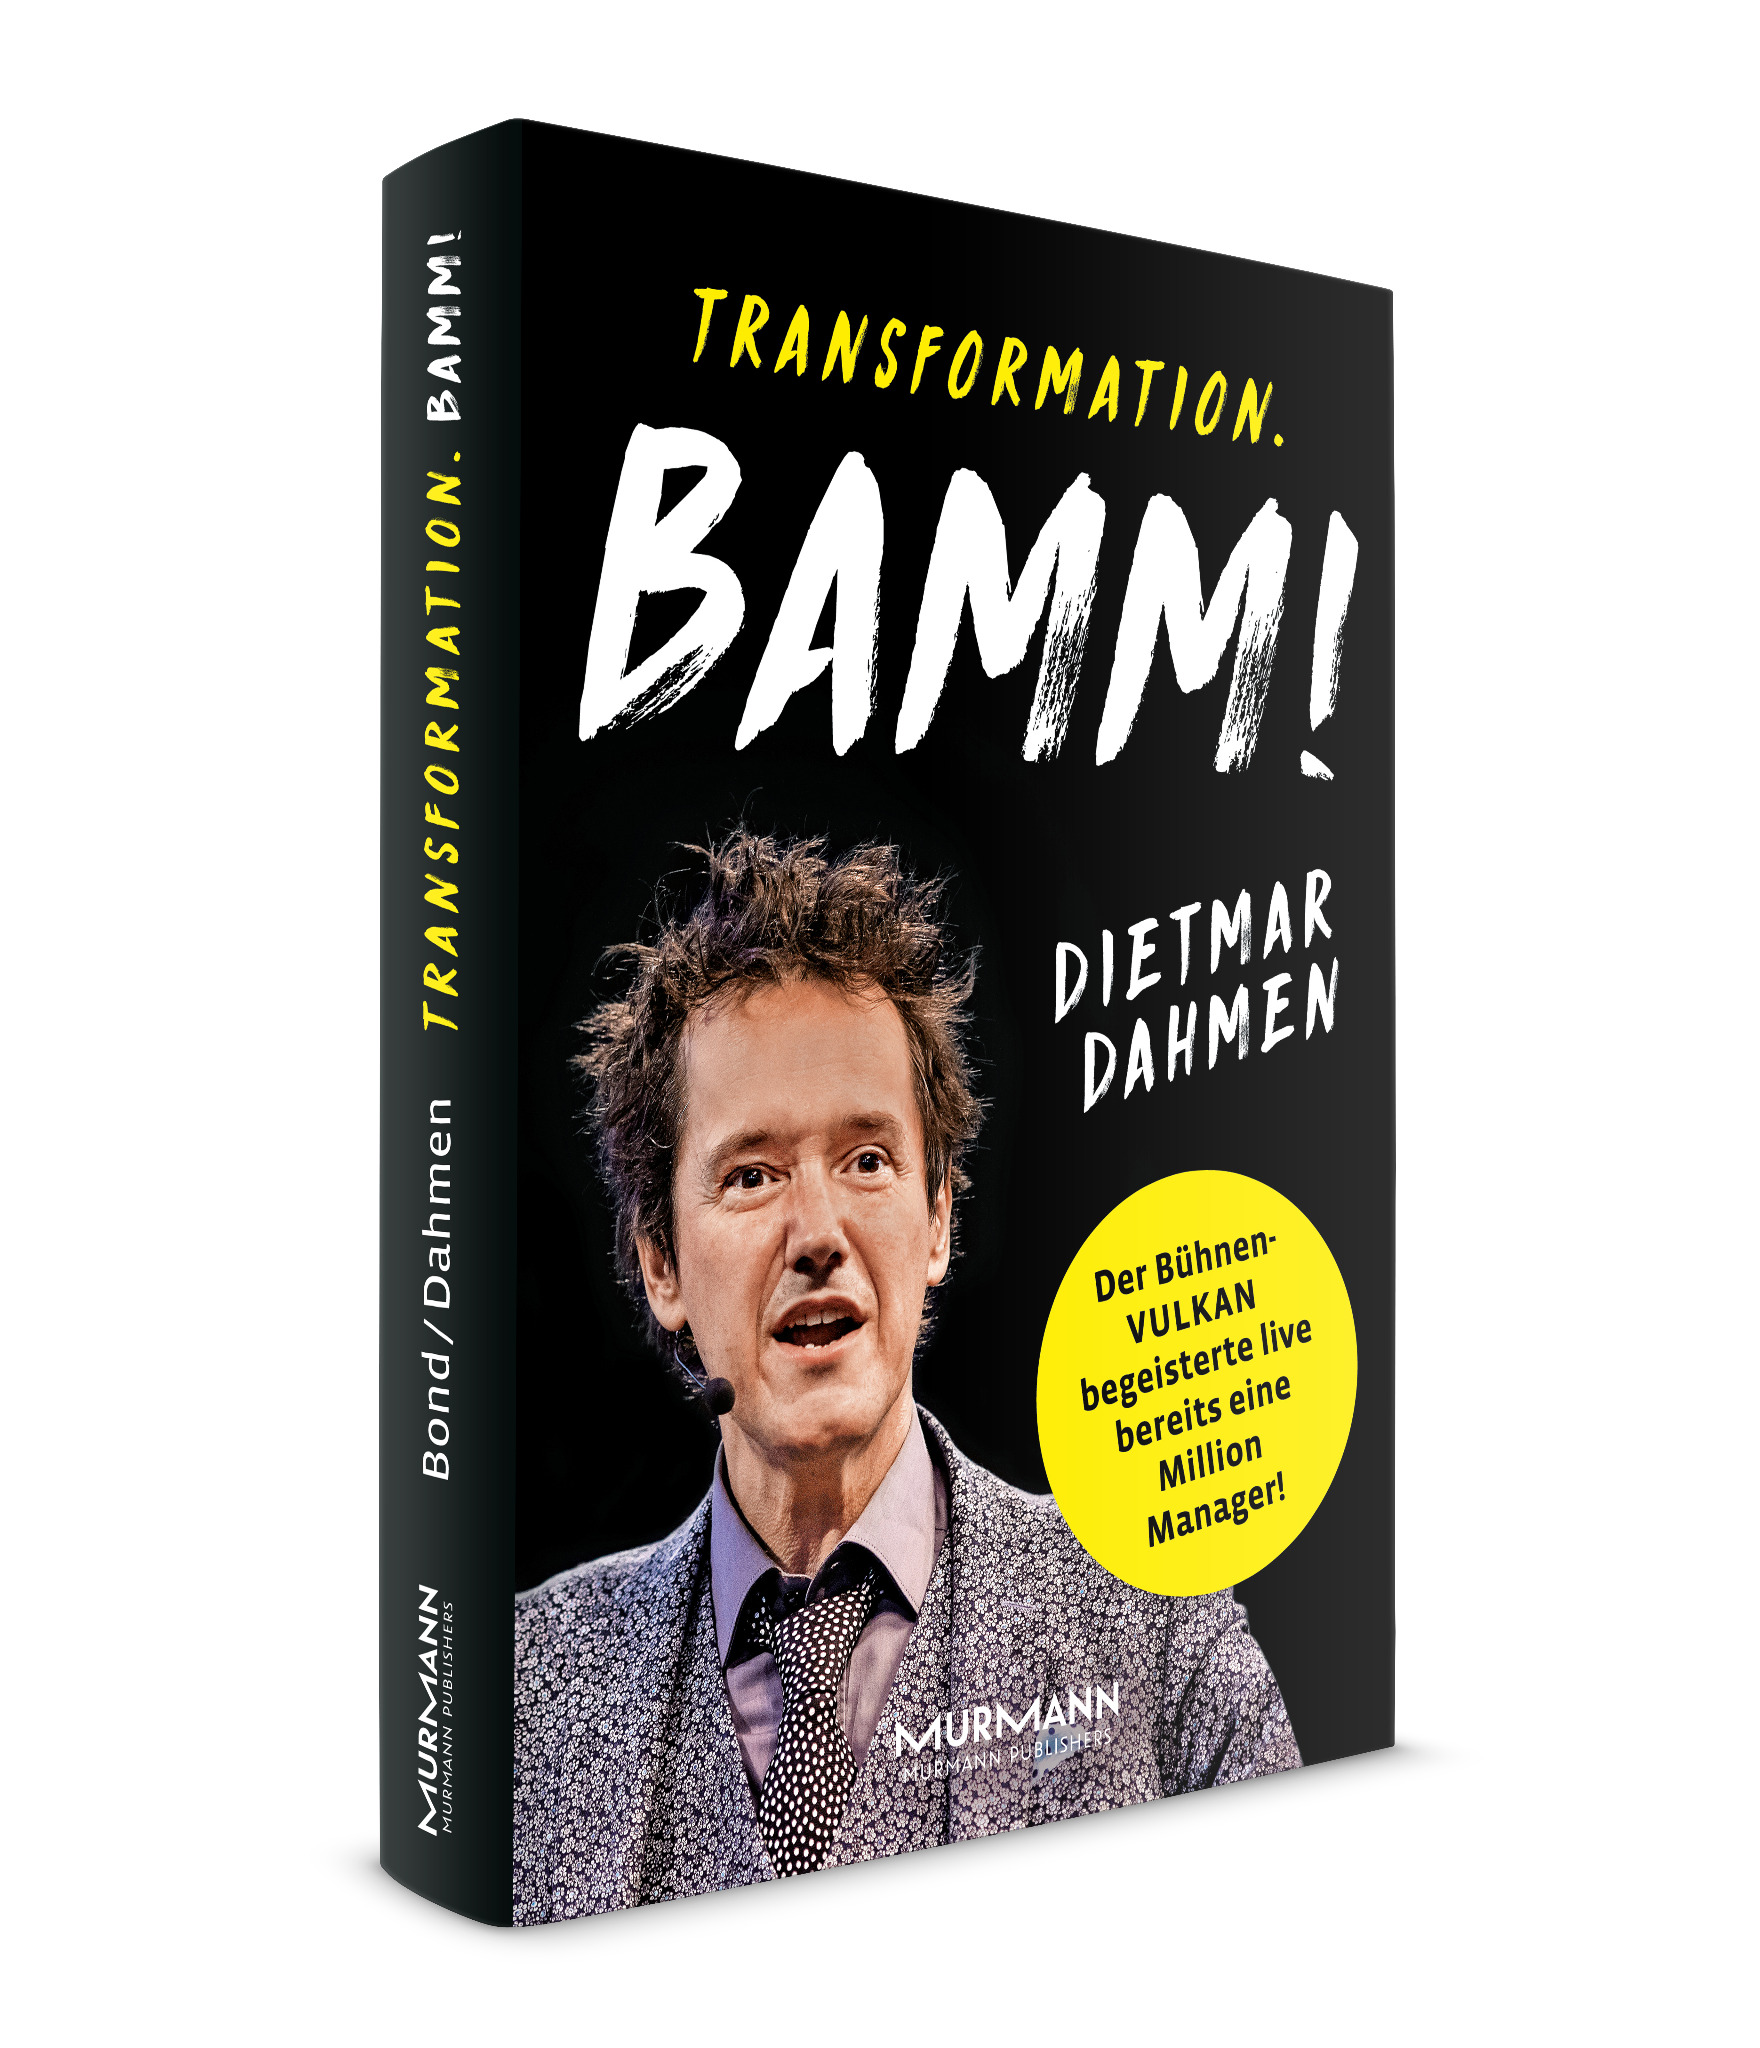 Transformation. Bamm! /  Dietmar Dahmen, Marcus Bond